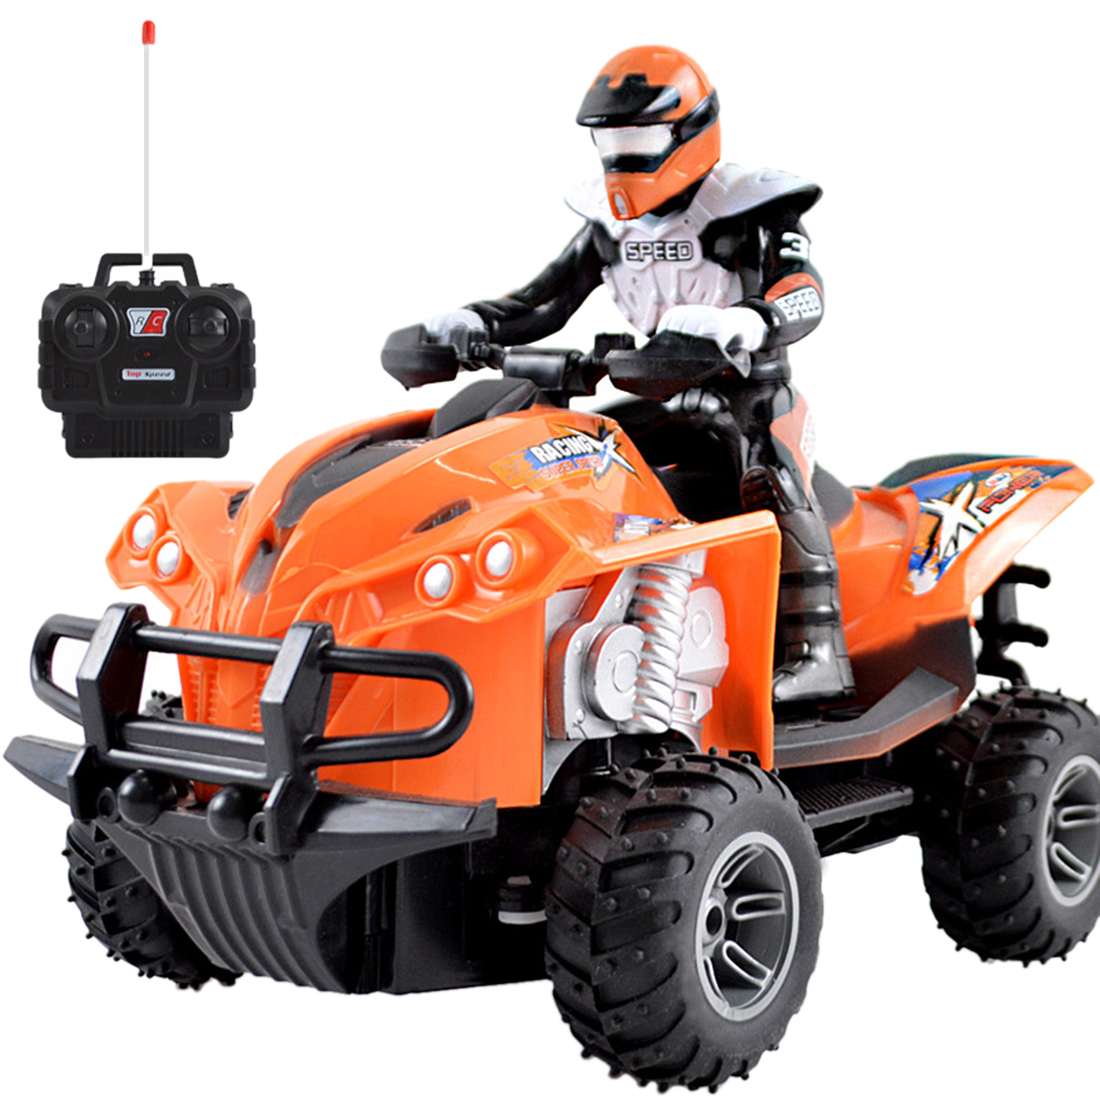 Children Boys Toy Remote Control Toys Motocross Boy Girl Four-wheeled RC Motorcycle Cool Toy Car Toys & Hobbies EU Plug Orange